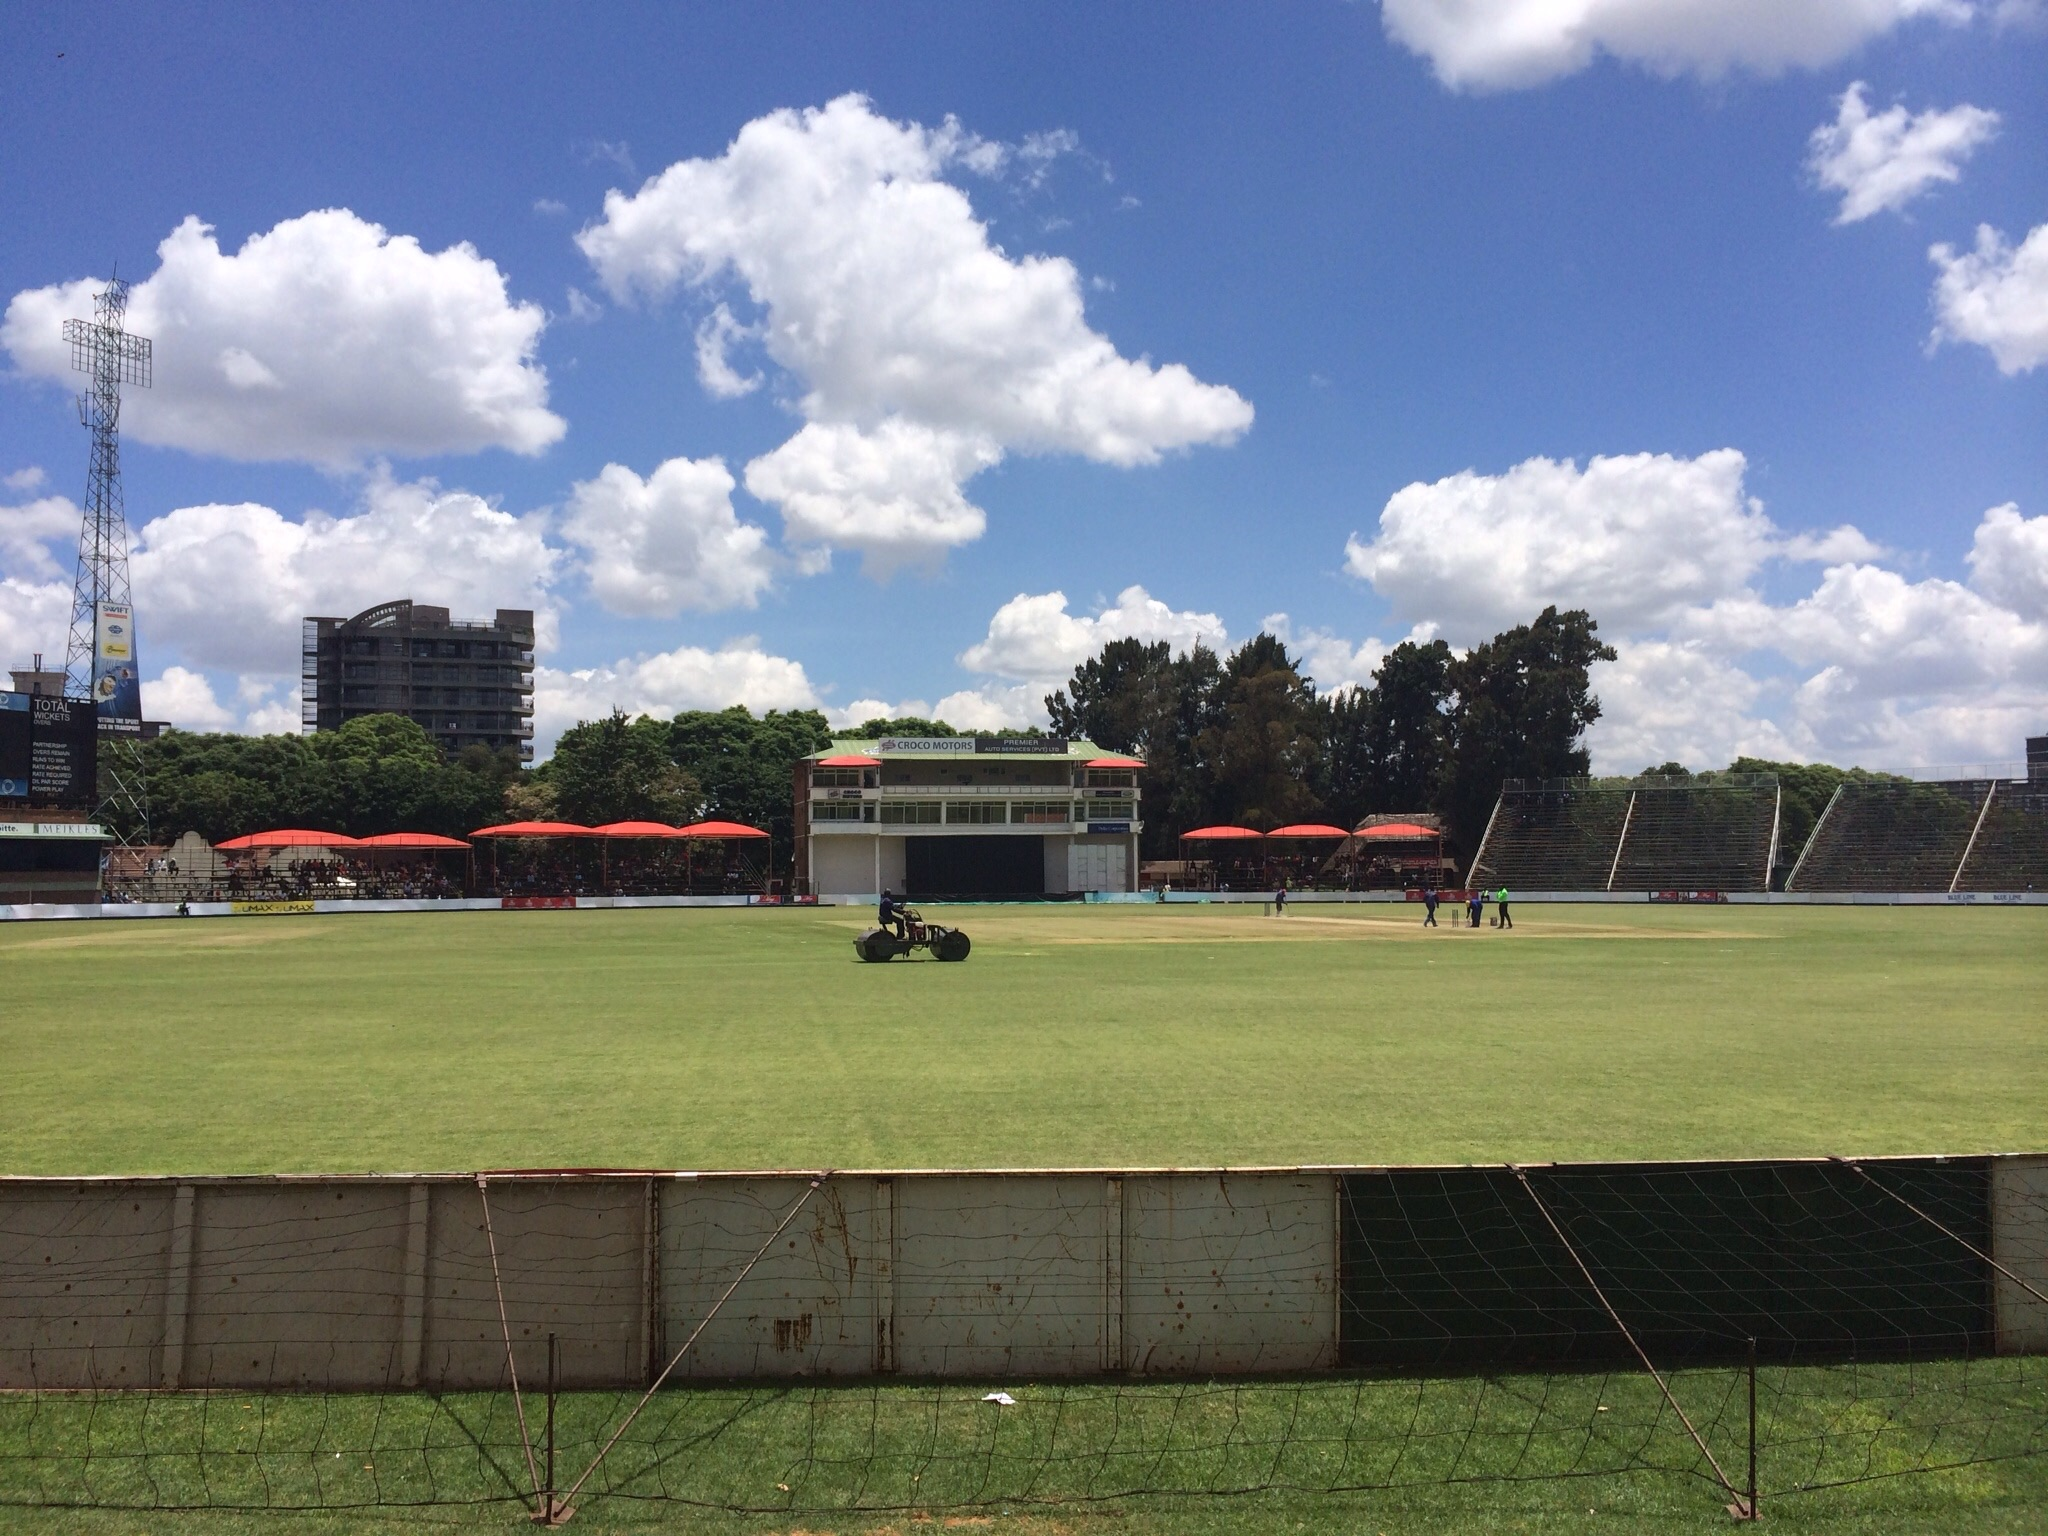 View from the vintage cricket pitch in Harare, as the lawn zamboni cruises by